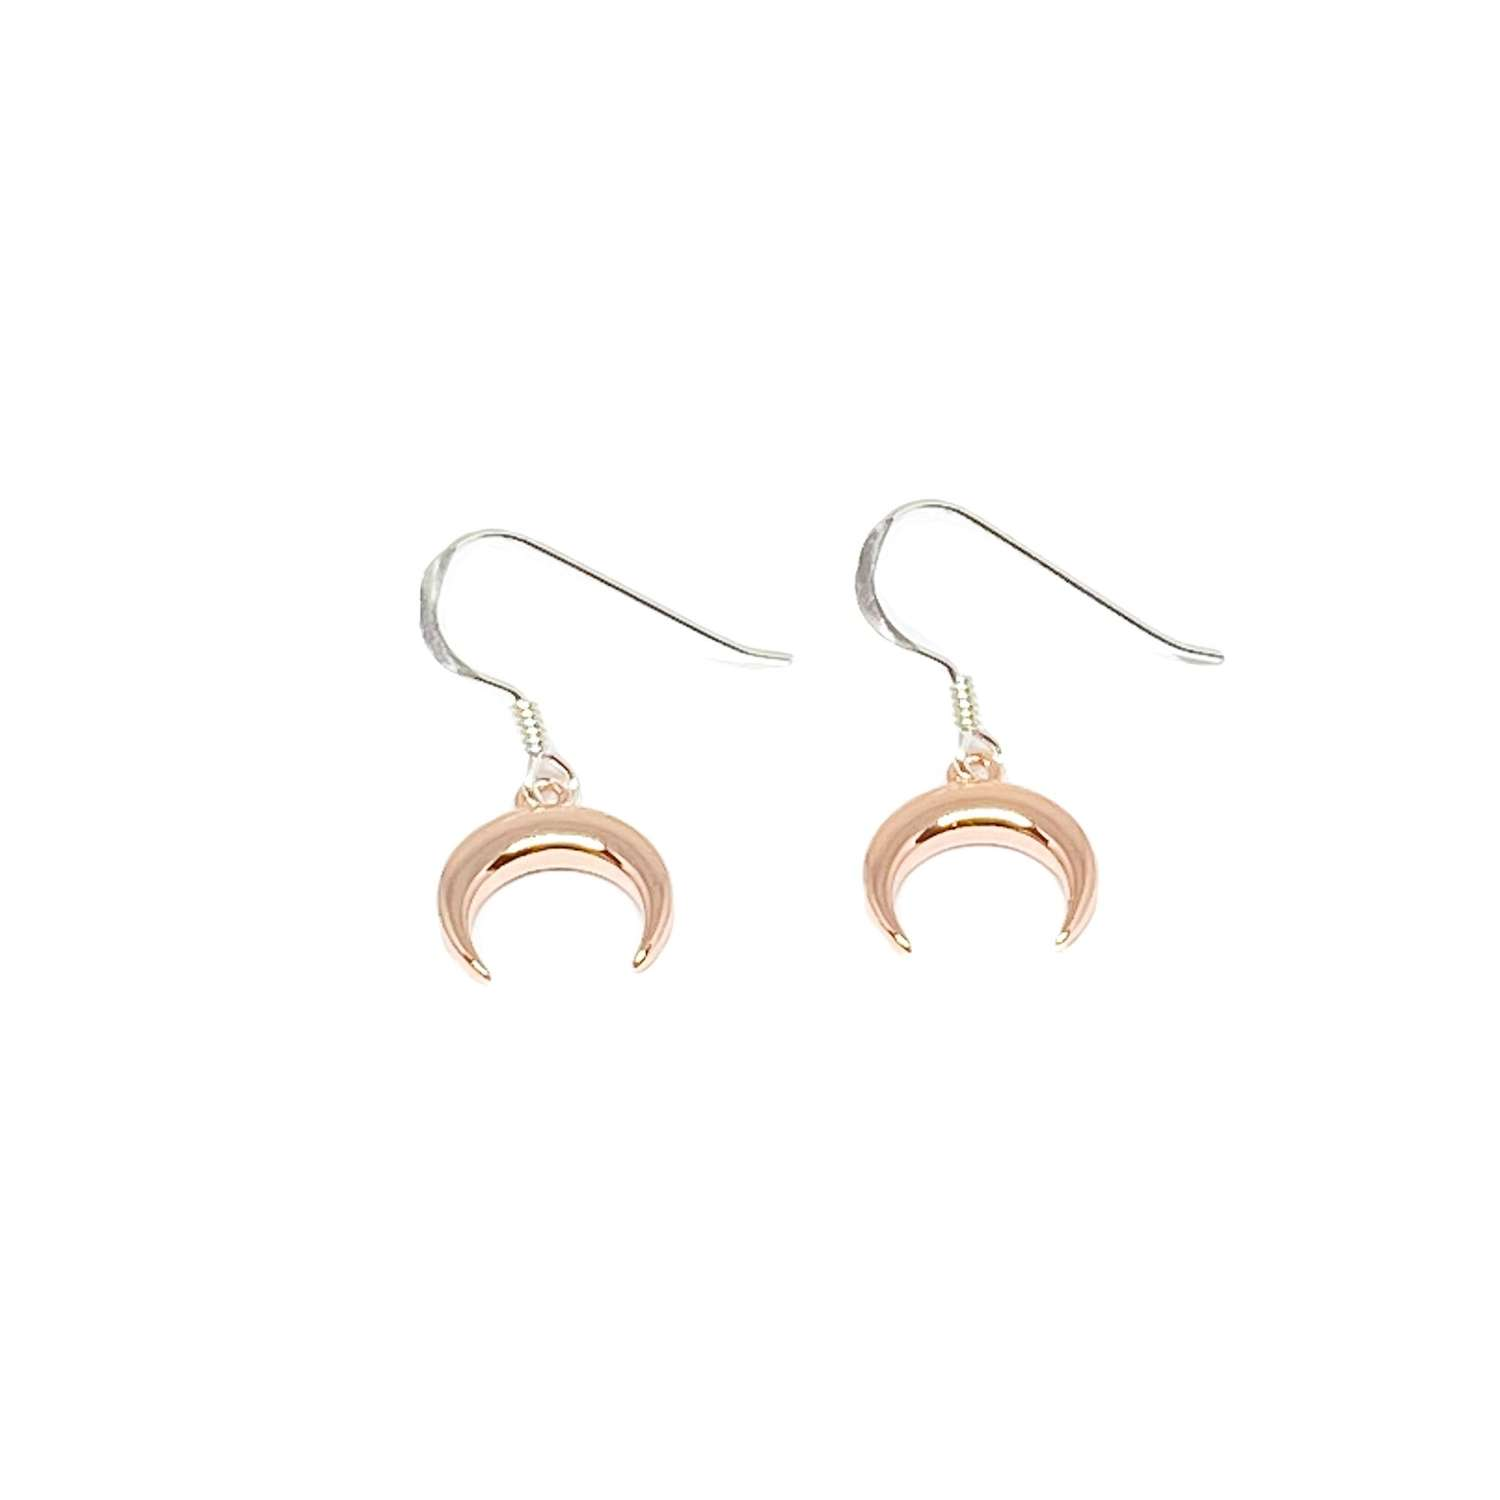 Torah Horn Sterling Silver Earrings - Rose Gold